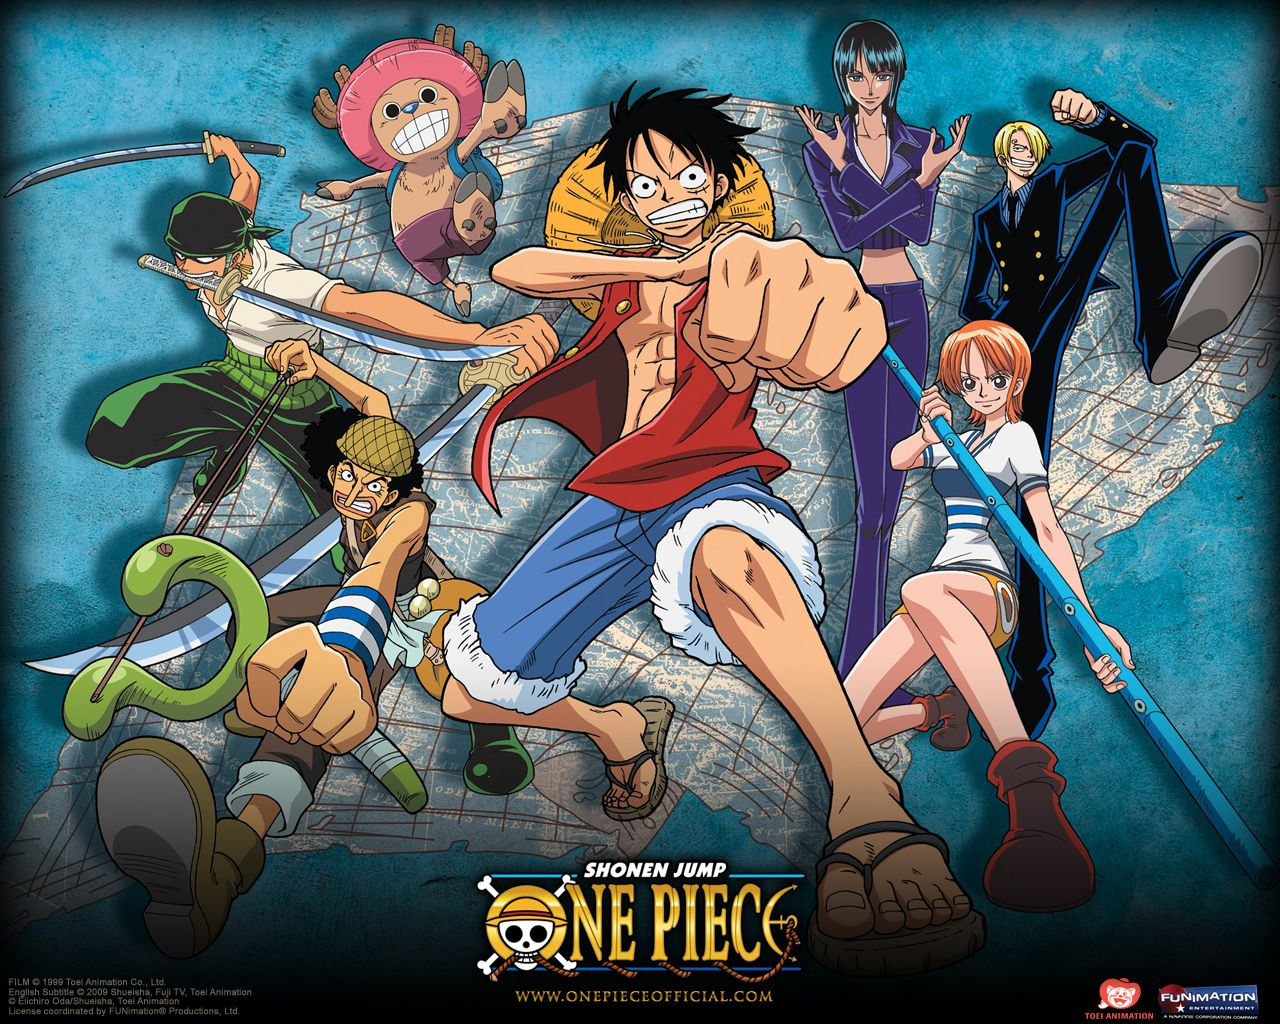 One Piece Anime Read One Piece Manga Online at